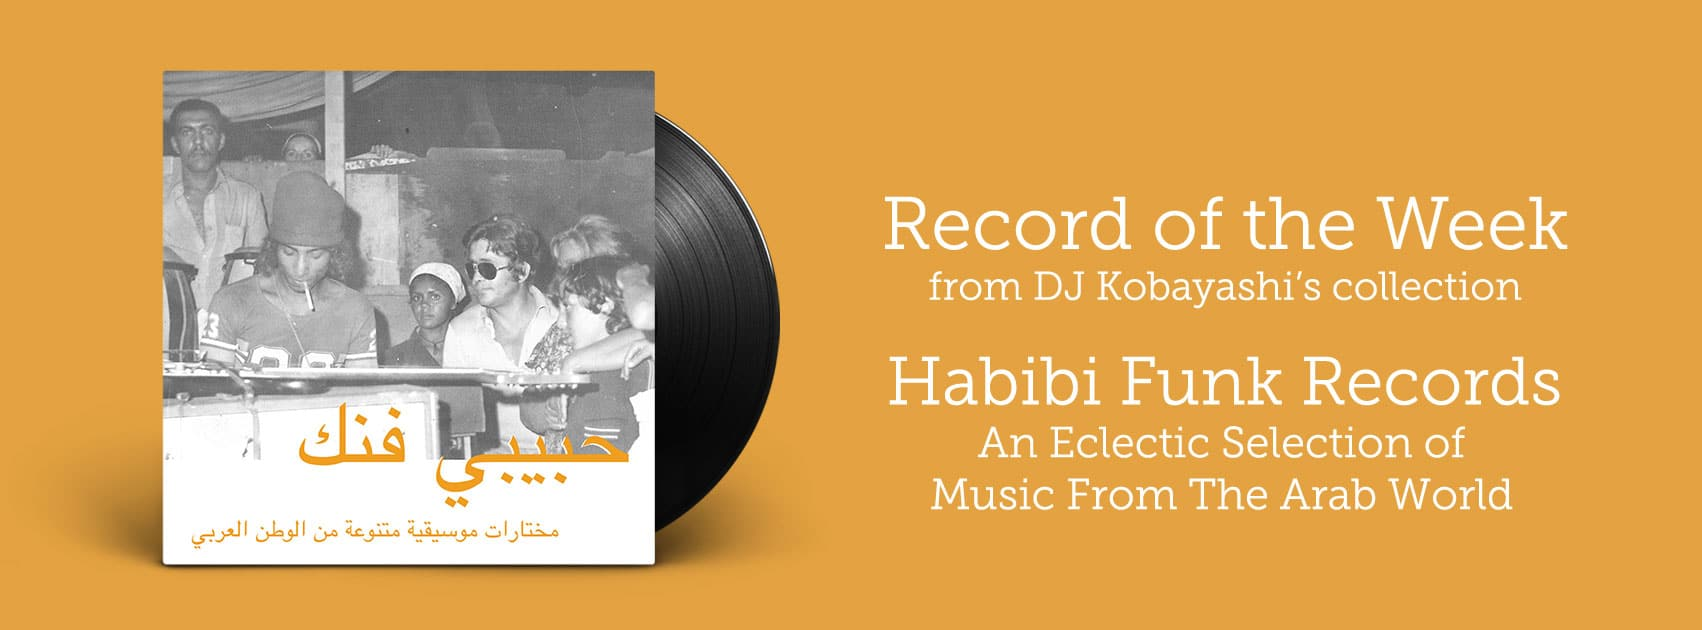 An Eclectic Selection of Music from The Arab World